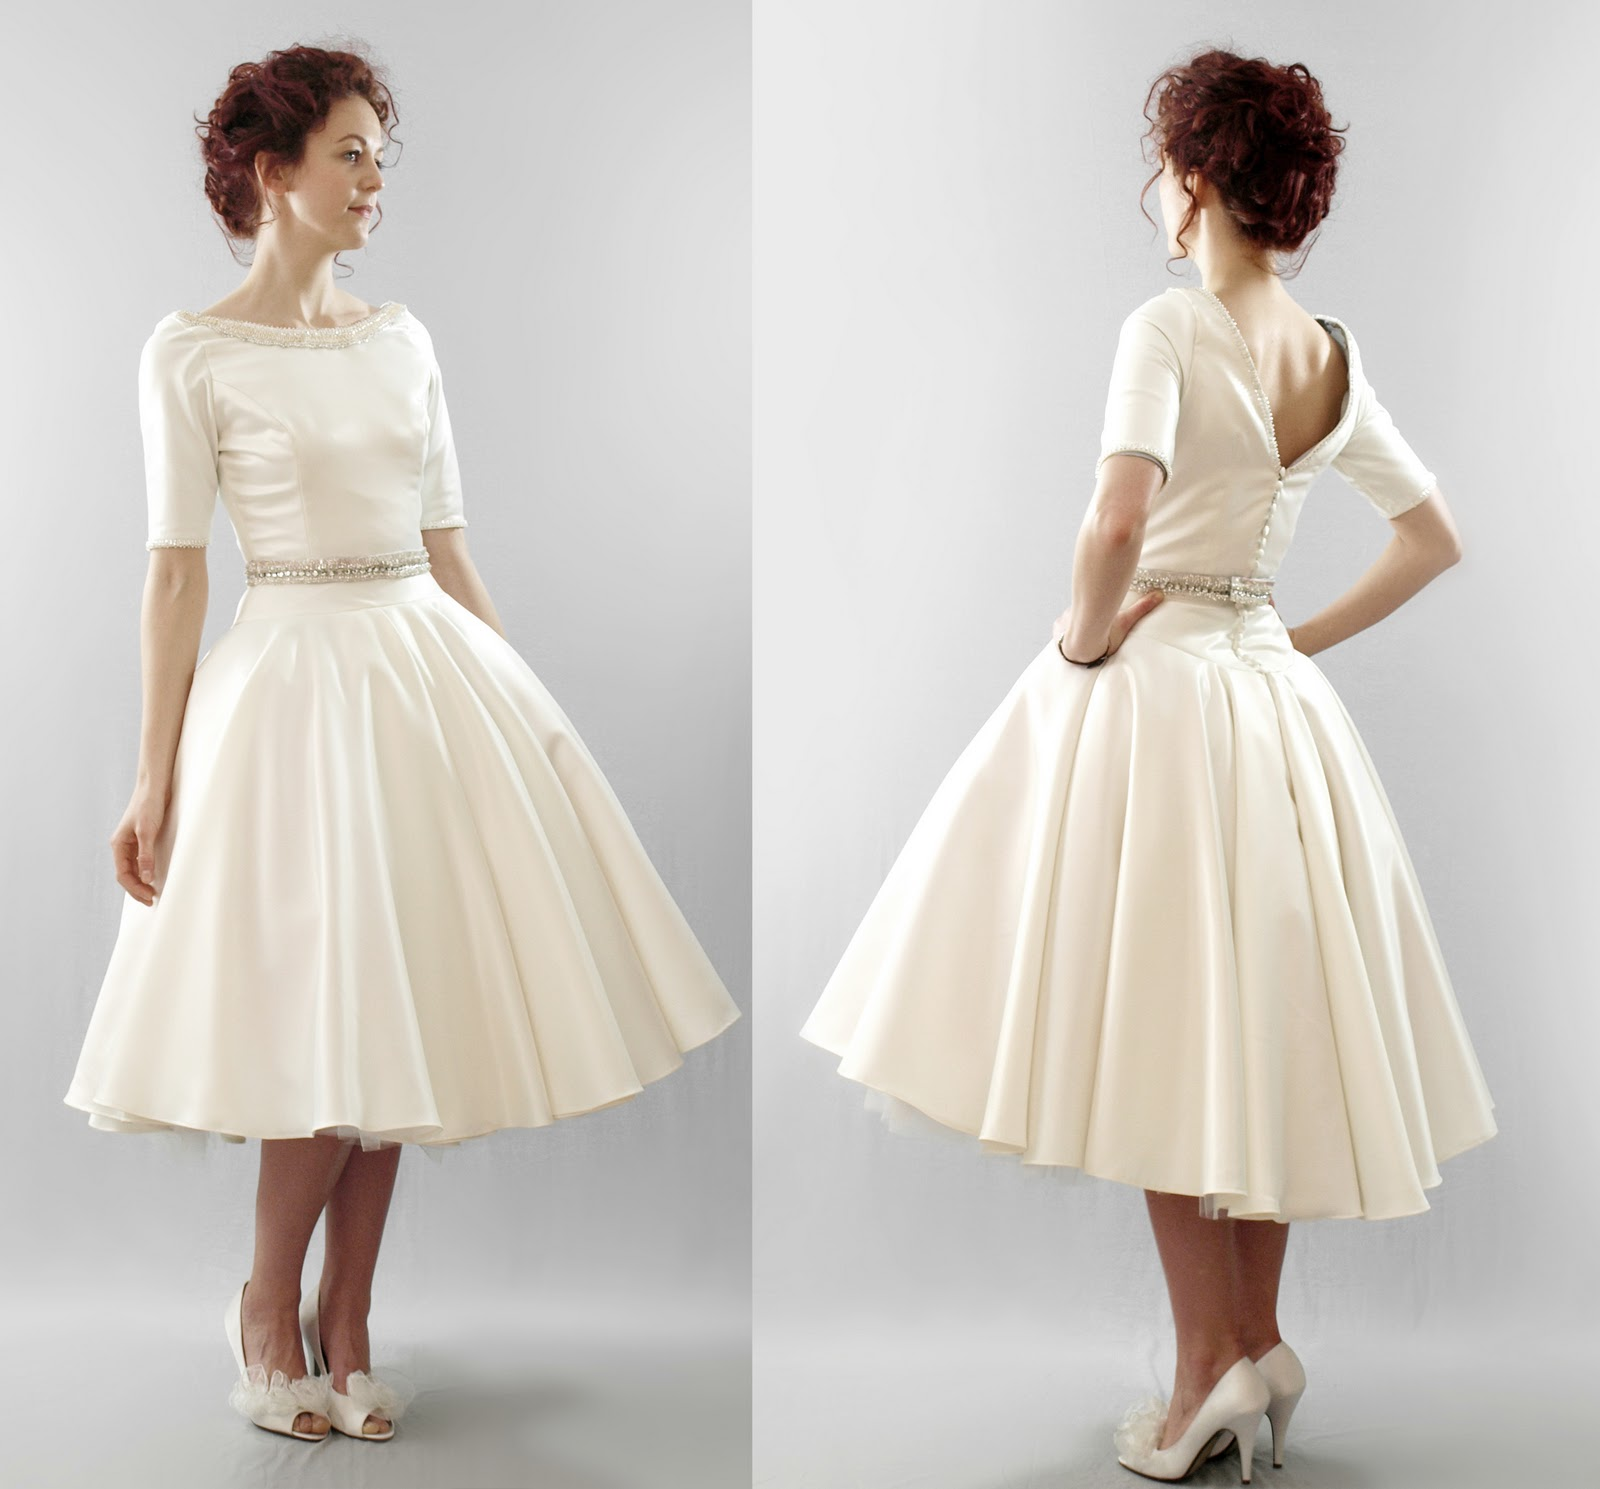 Vintage Inspired Clothing. : Christy, The